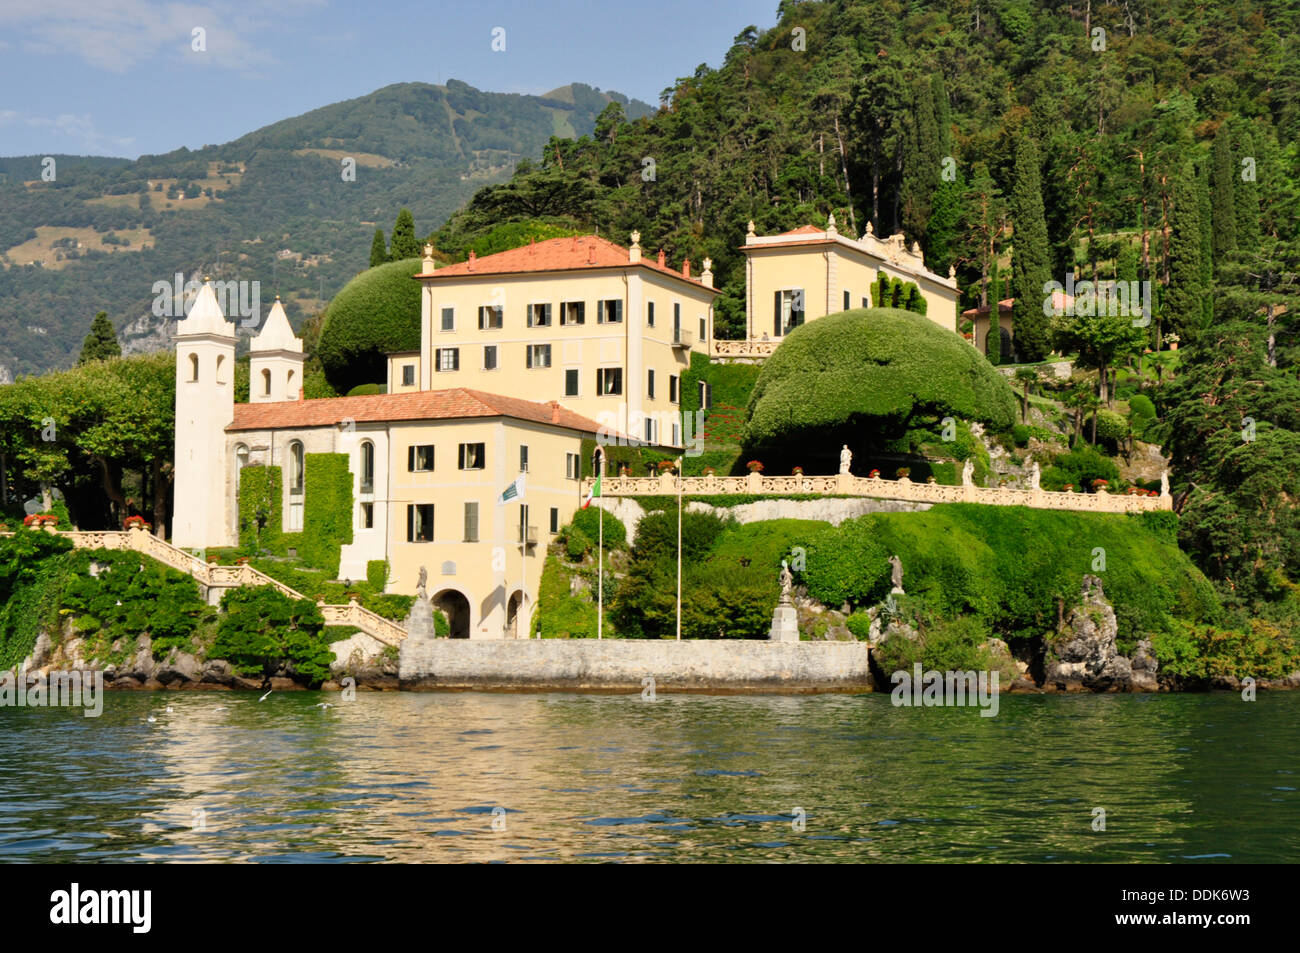 italy villa balbianello coast - photo #41